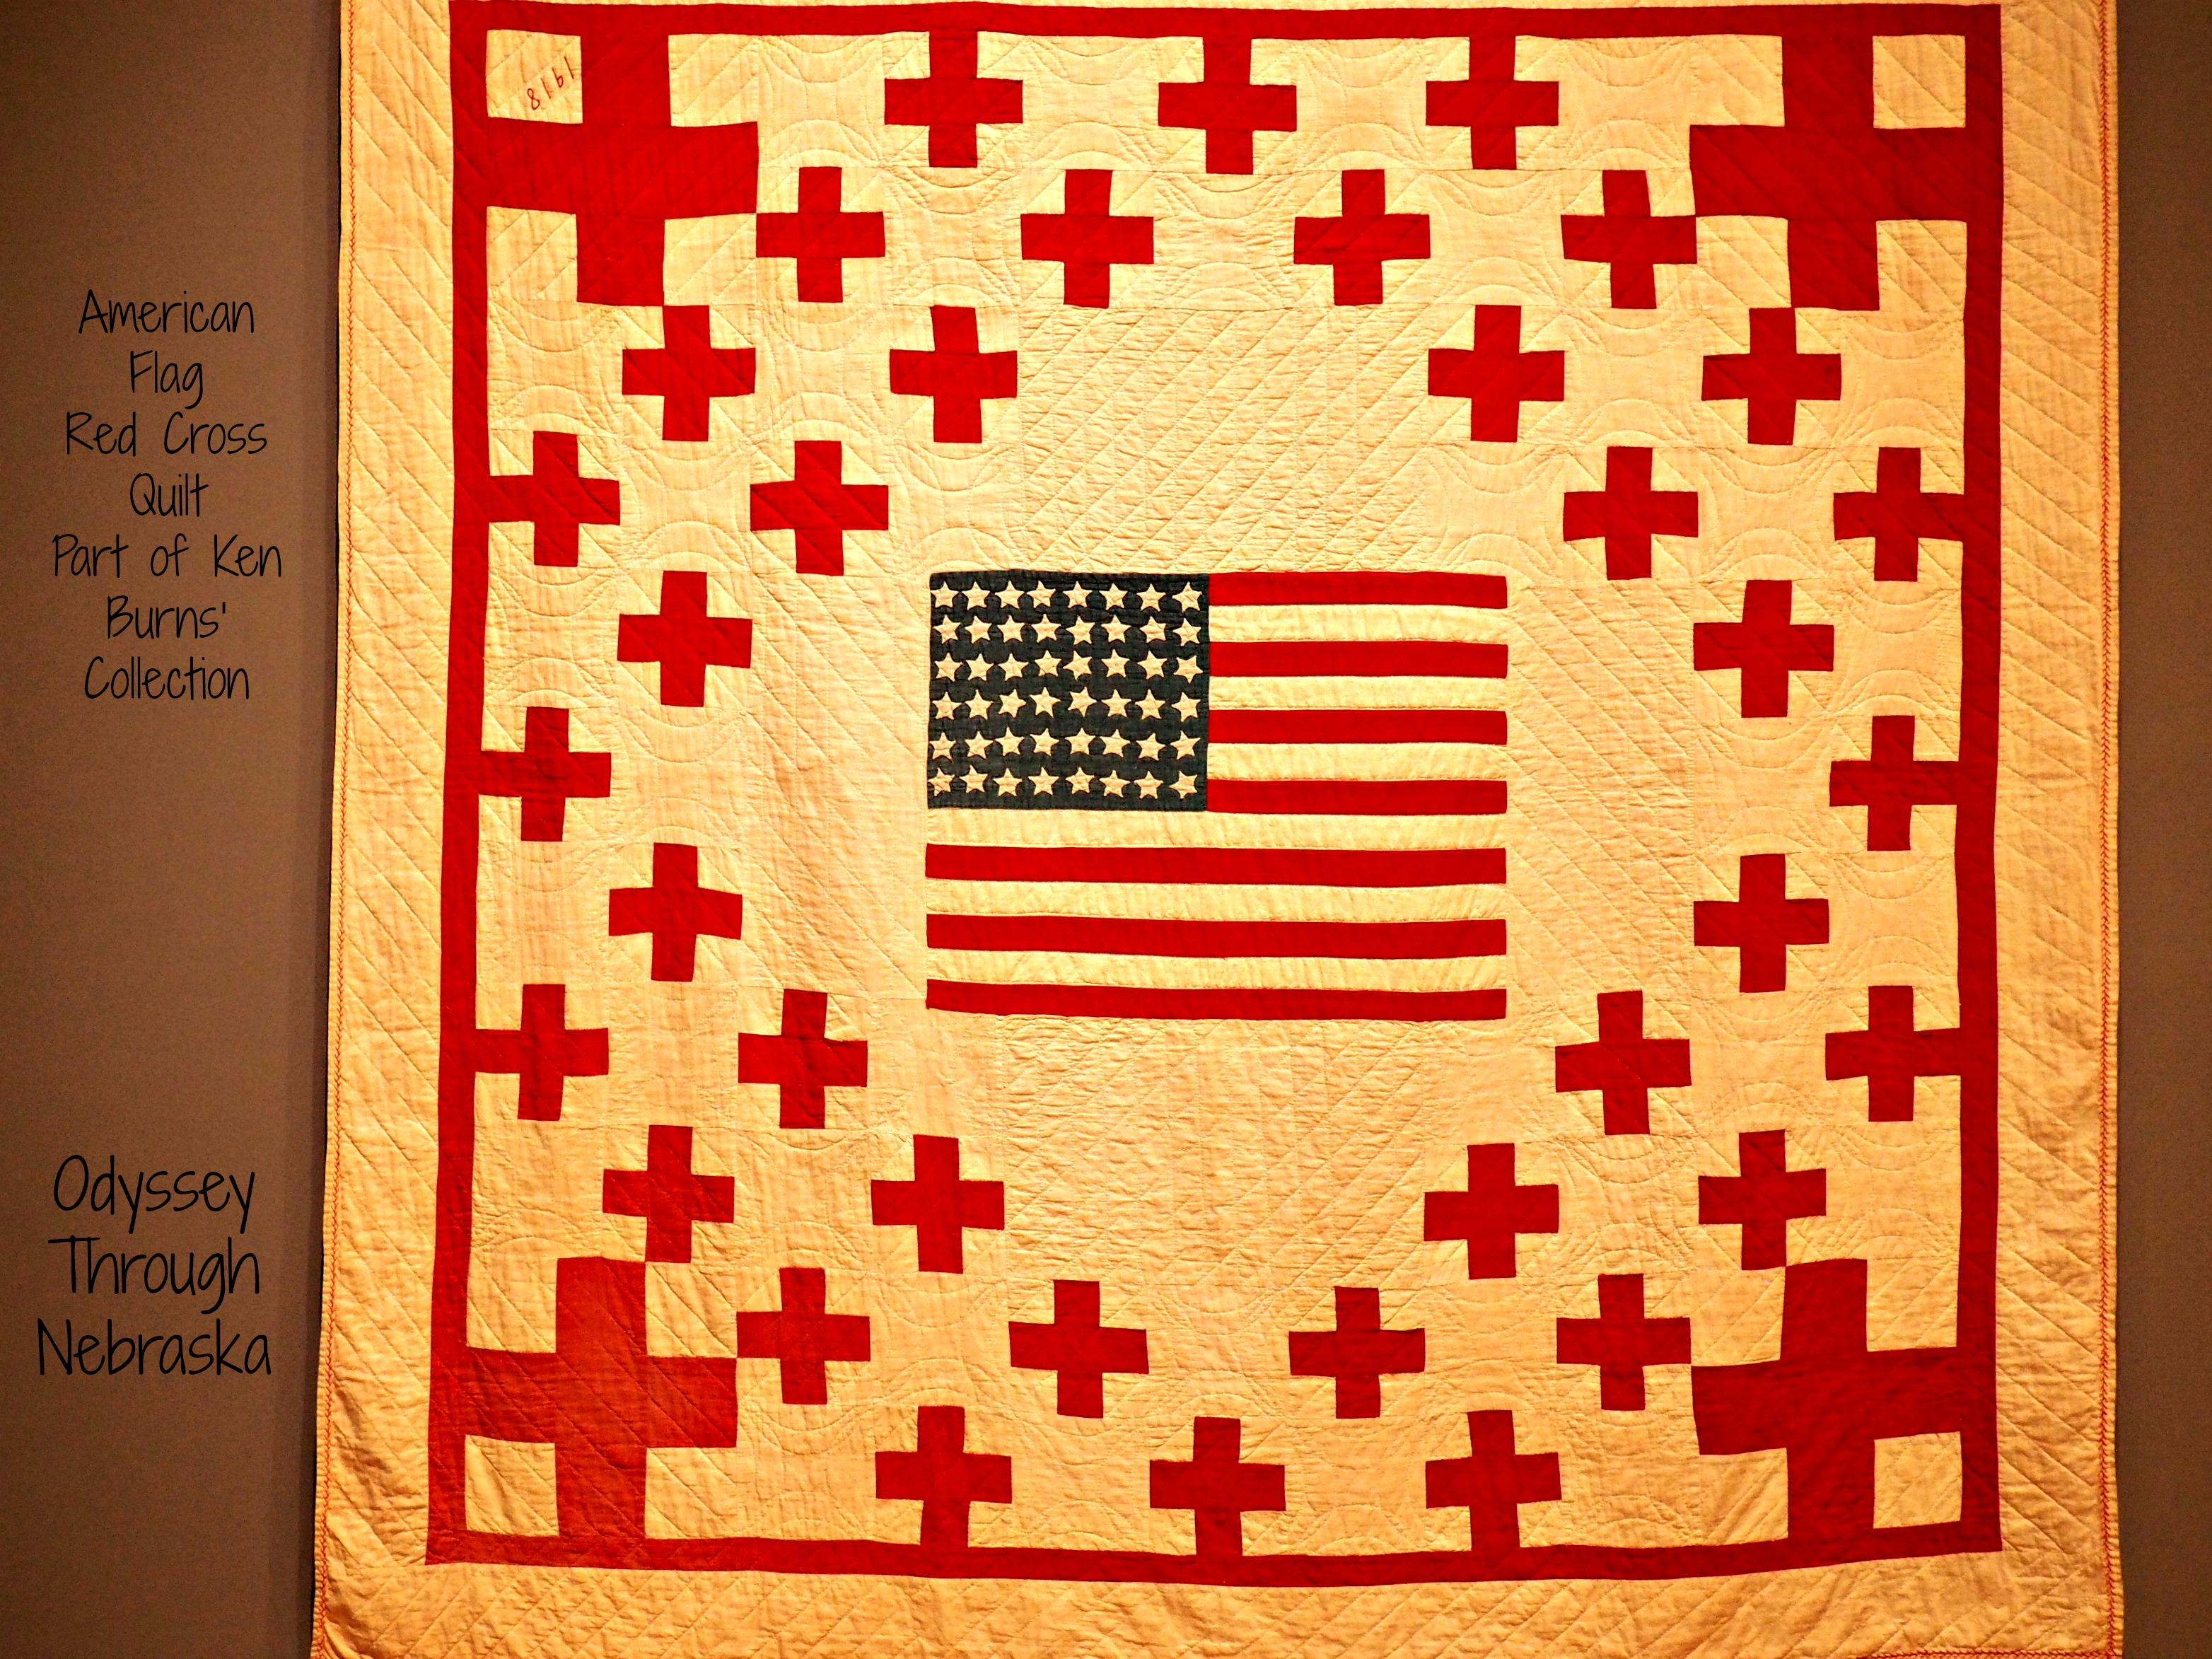 Uncovered Ken Burns Quilts